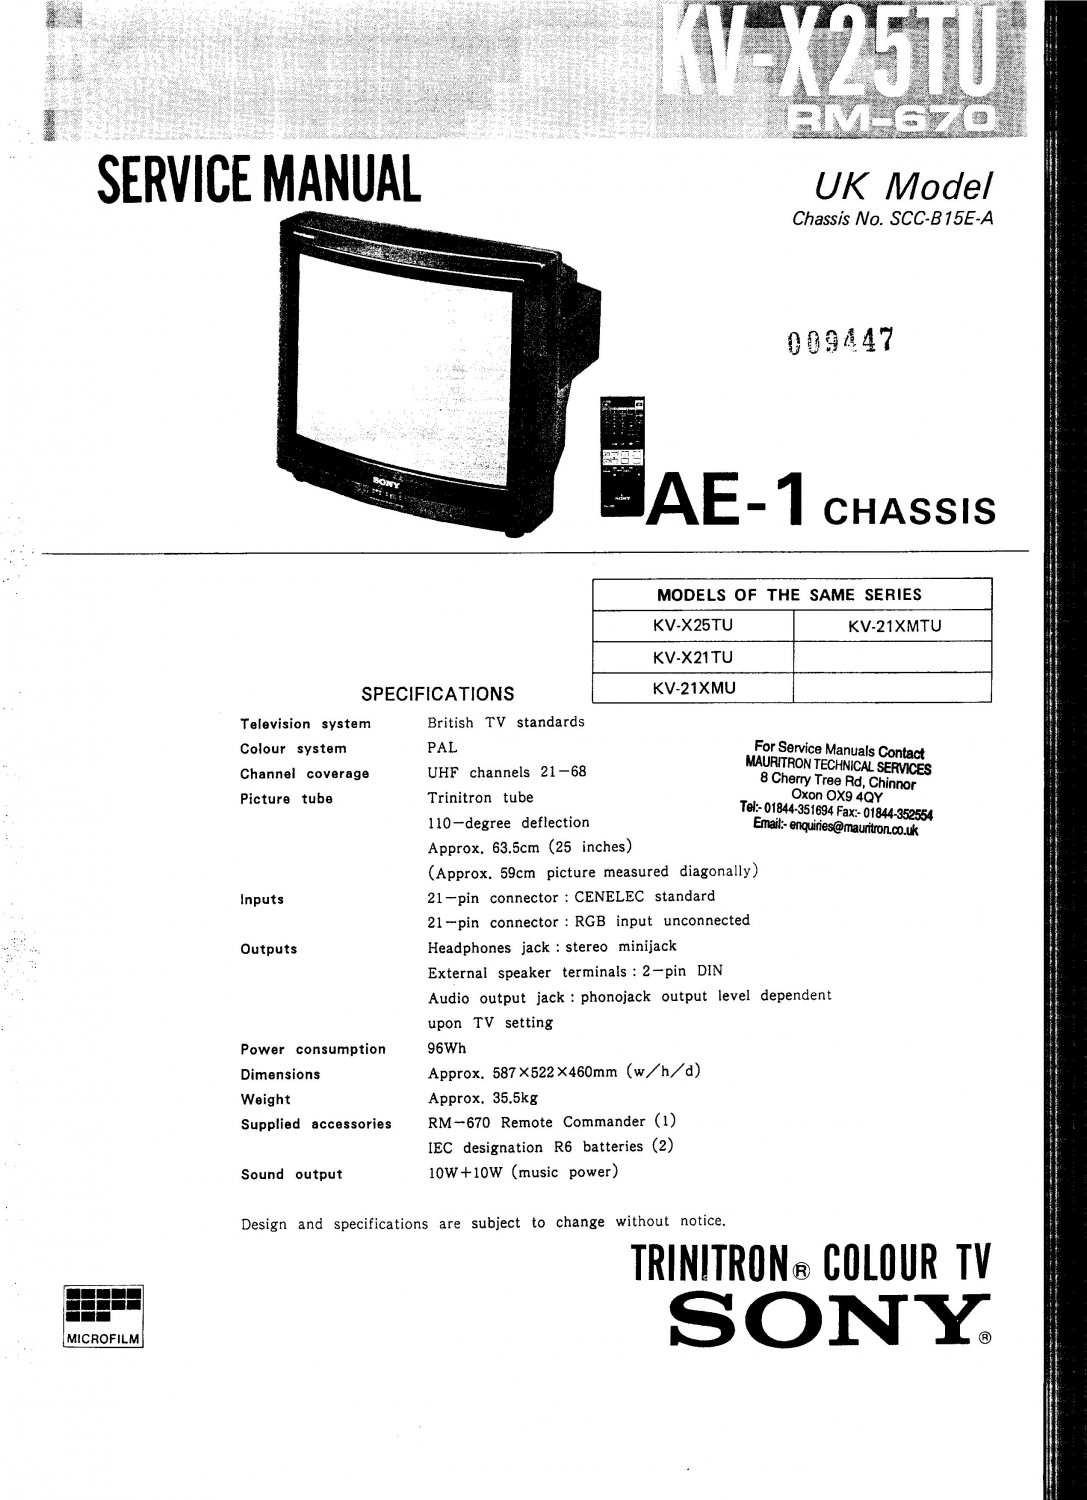 sony kvc25 ae1 chassis television service manual pdf download rh ecrater com